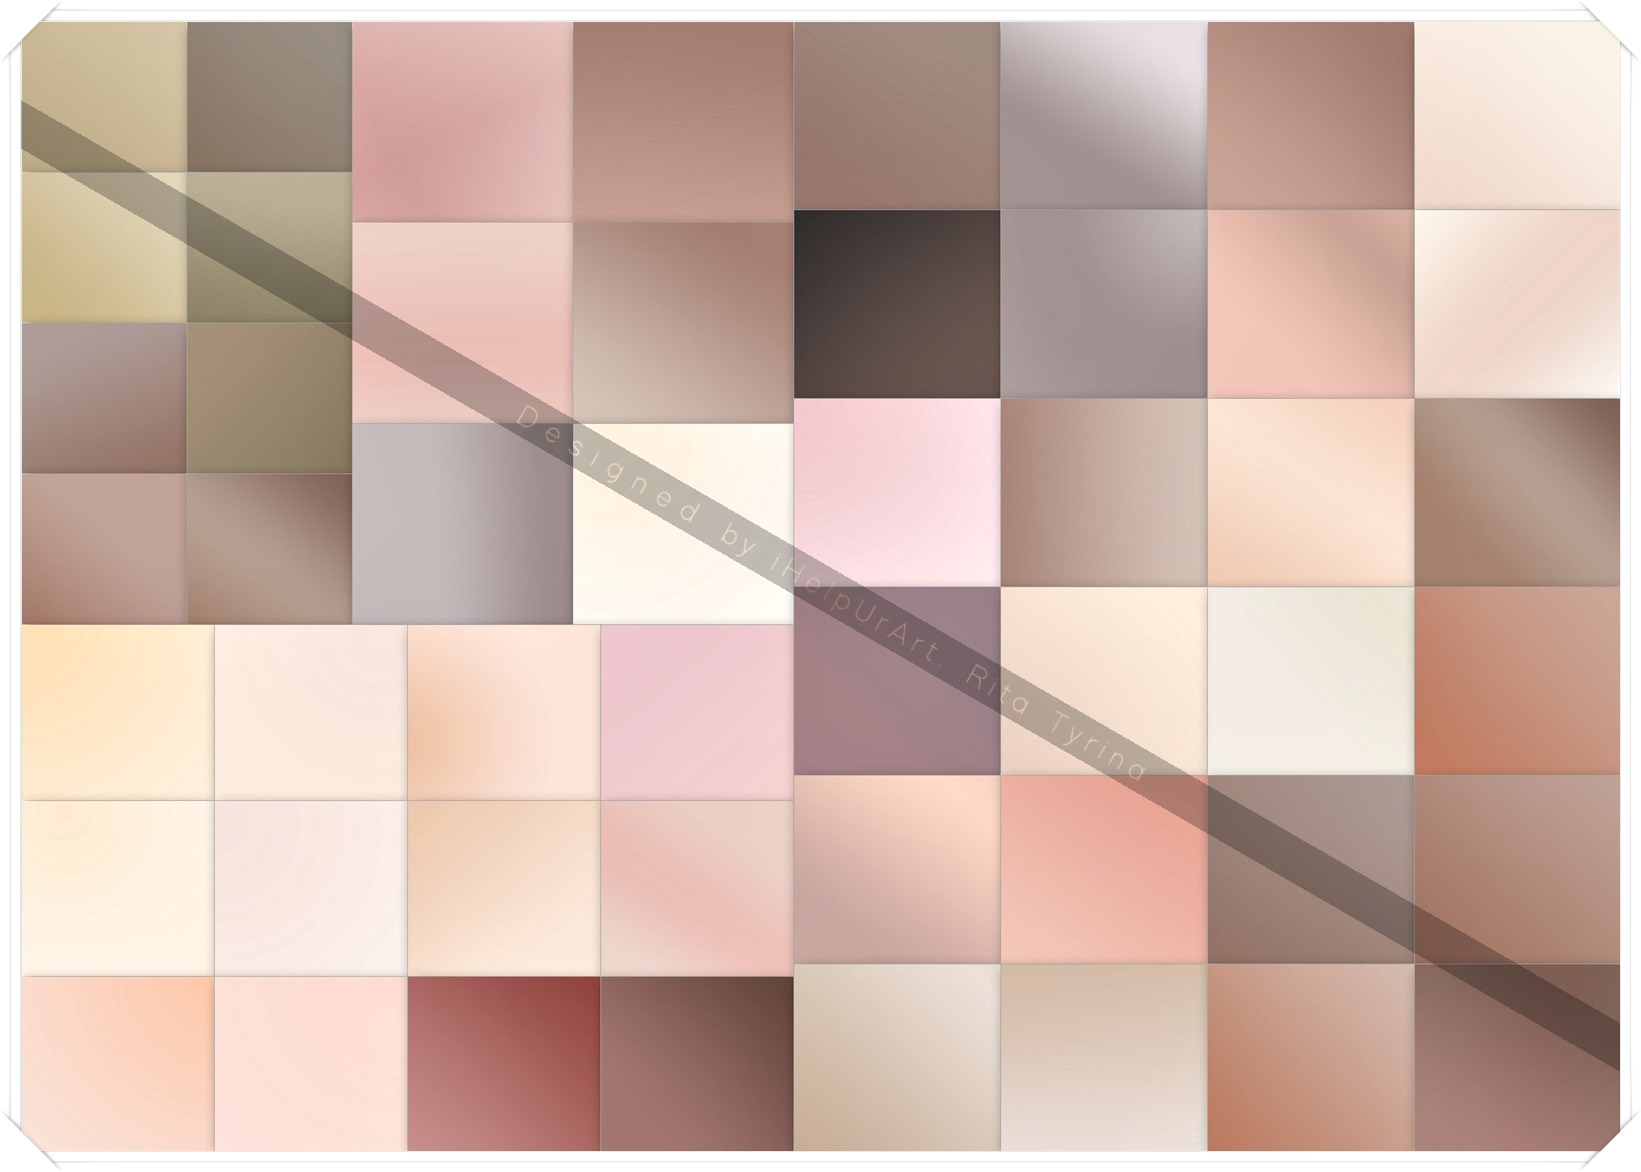 50 Mute Colors Gradient Baclrounds Pack example image 6